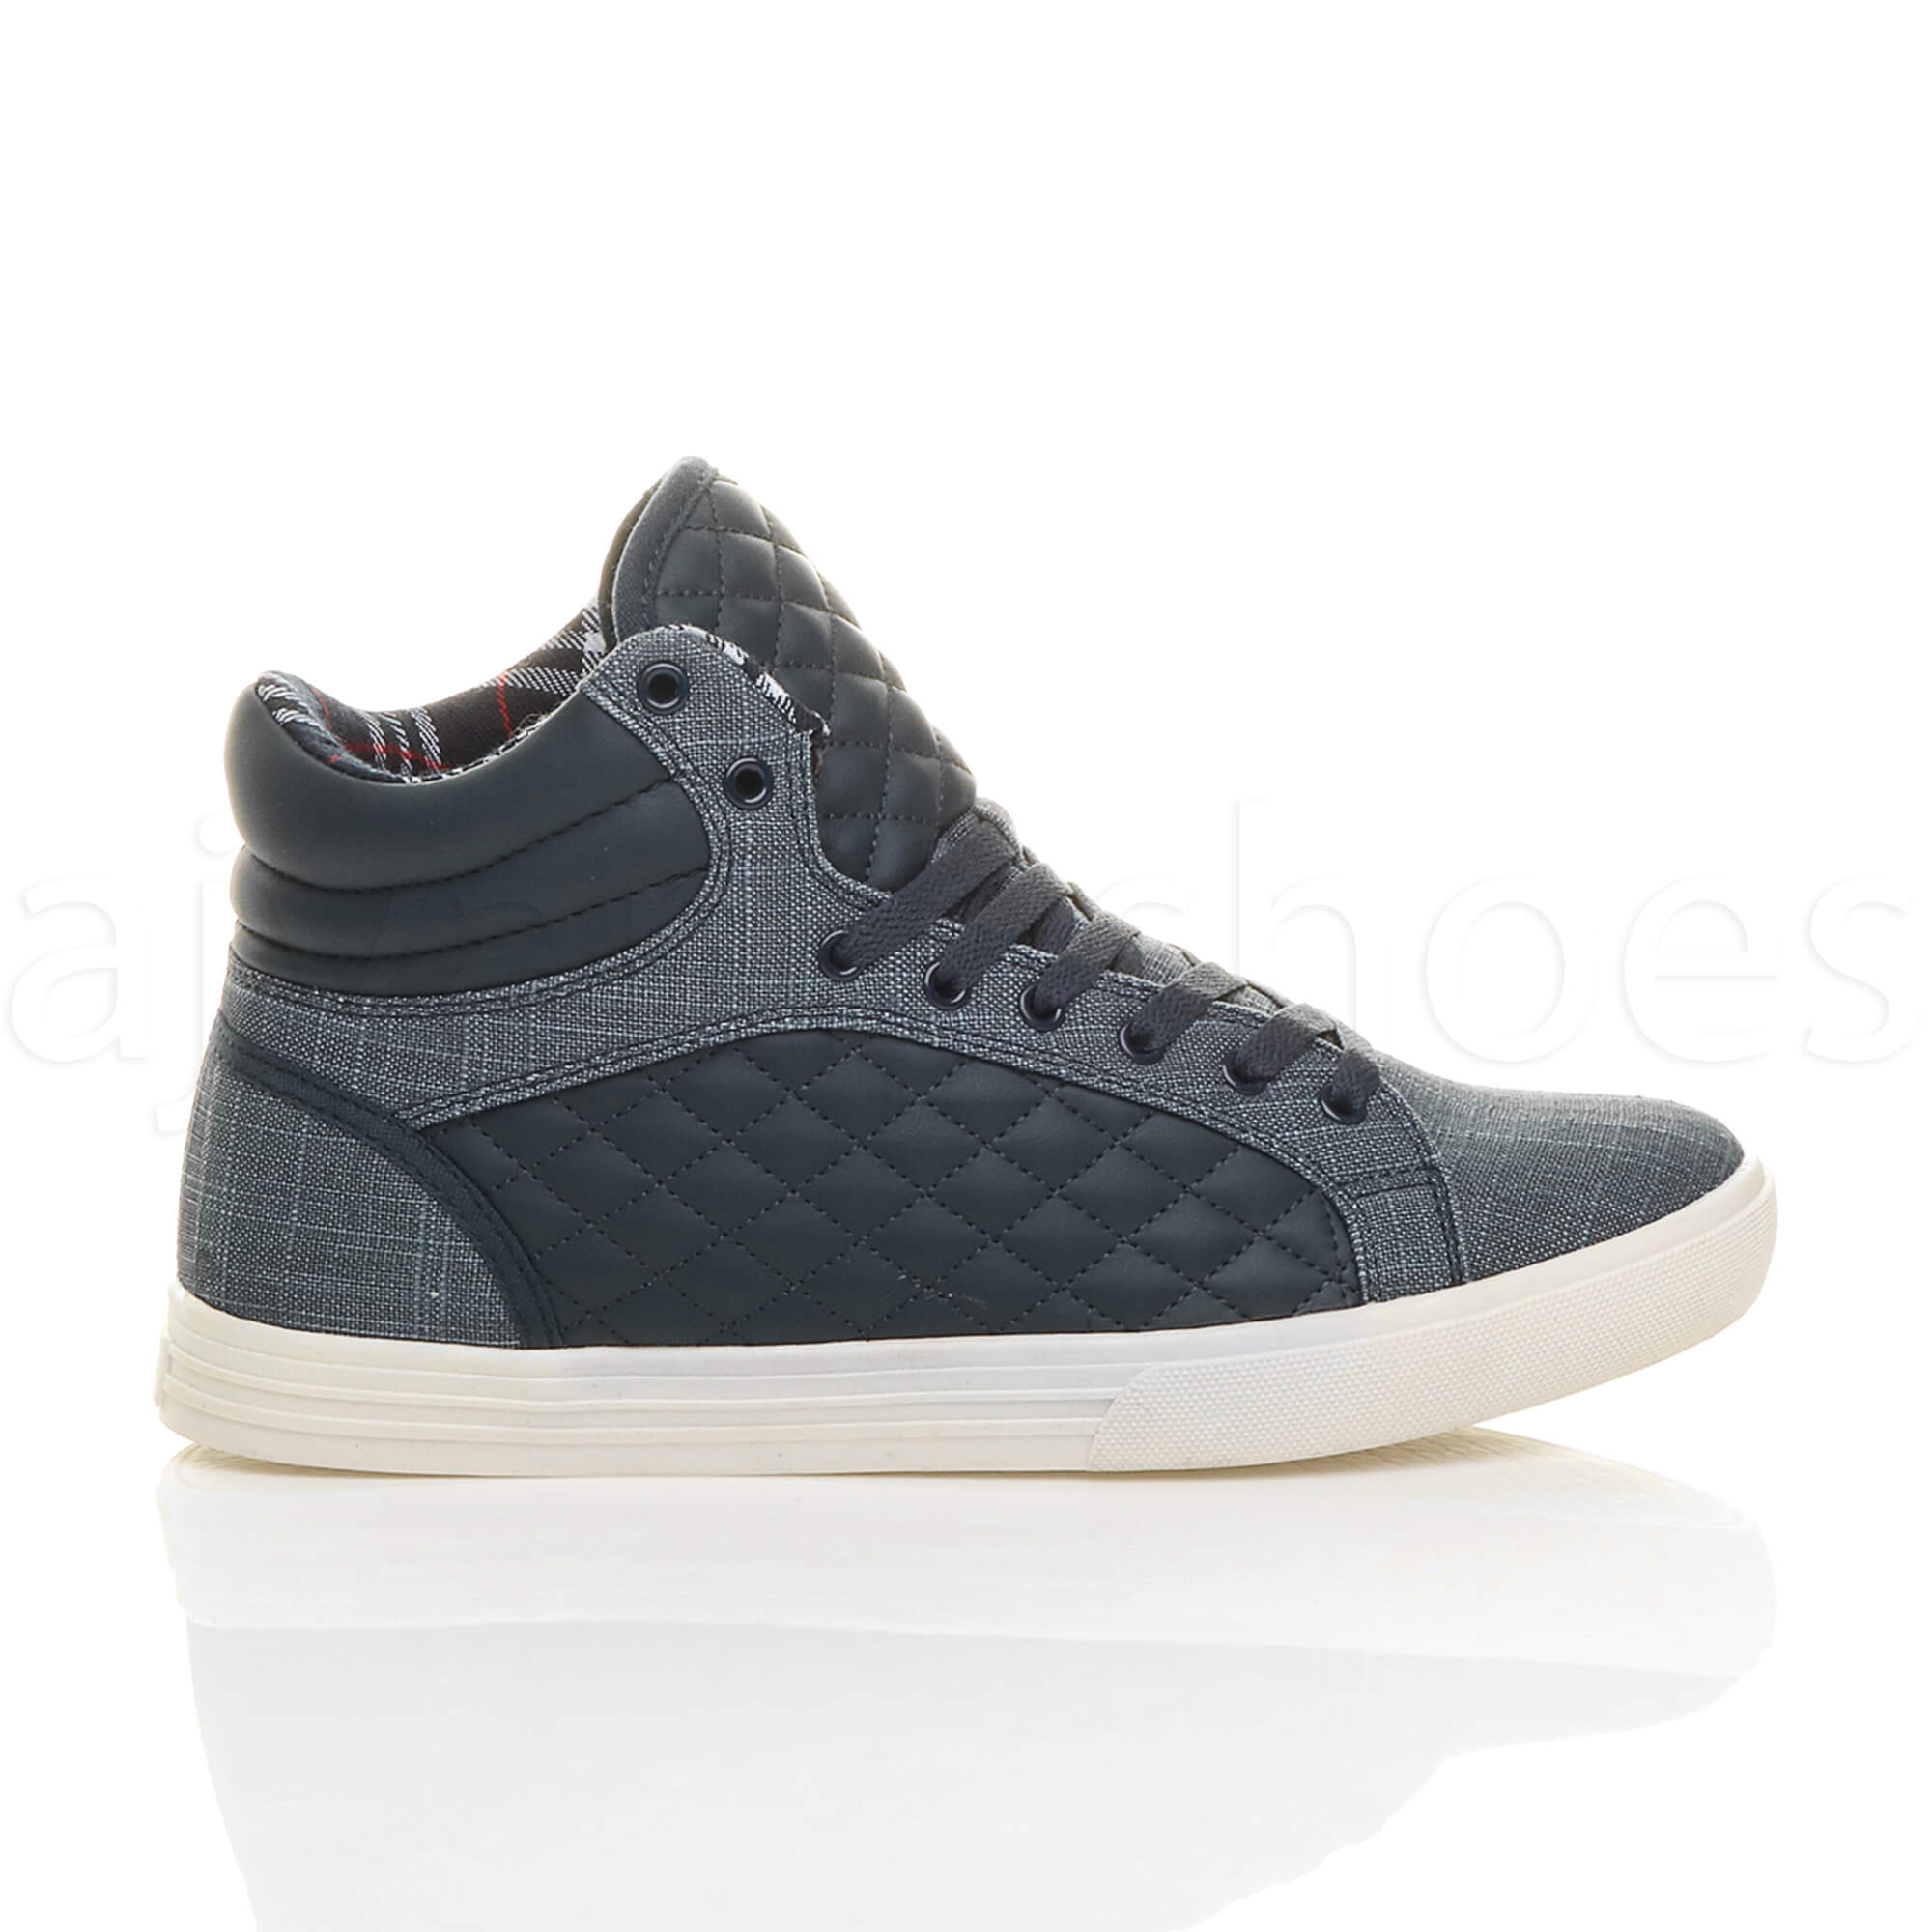 MENS-QUILTED-LACE-UP-FLAT-CASUAL-HI-HIGH-TOP-TRAINERS-SHOES-ANKLE-BOOTS-SIZE thumbnail 24